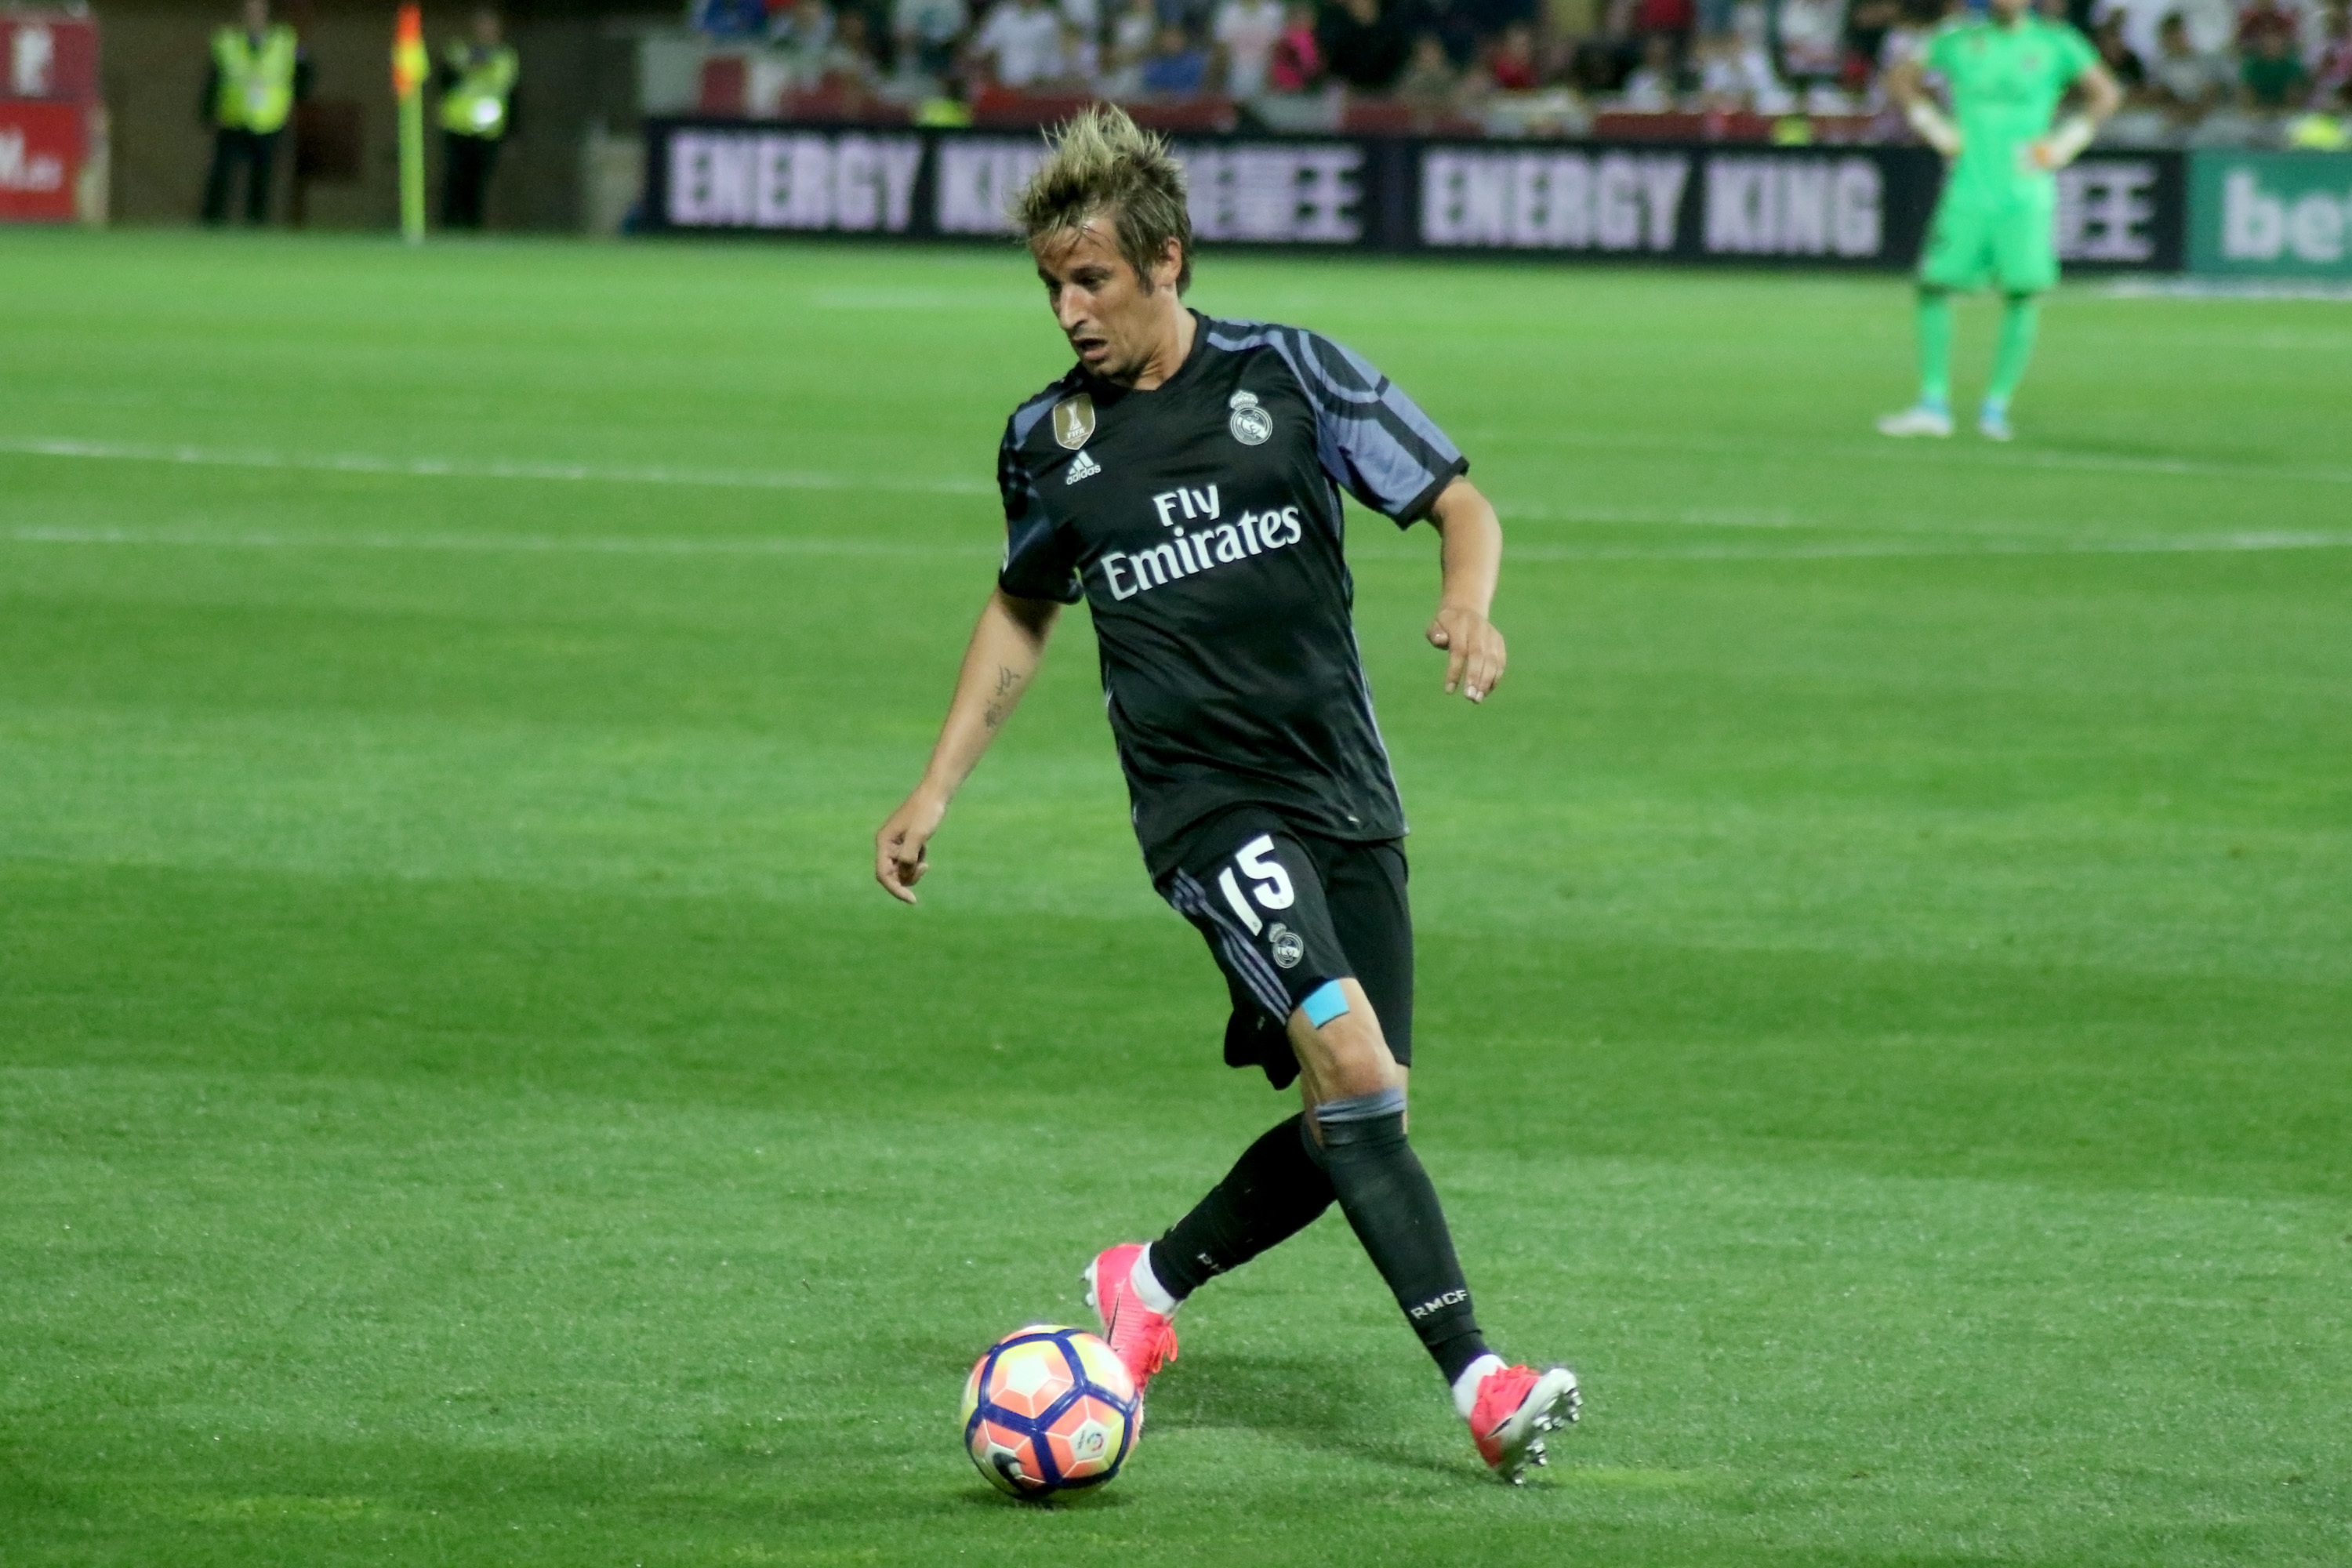 Coentrao won't be at the World Cup. Image: PA Images